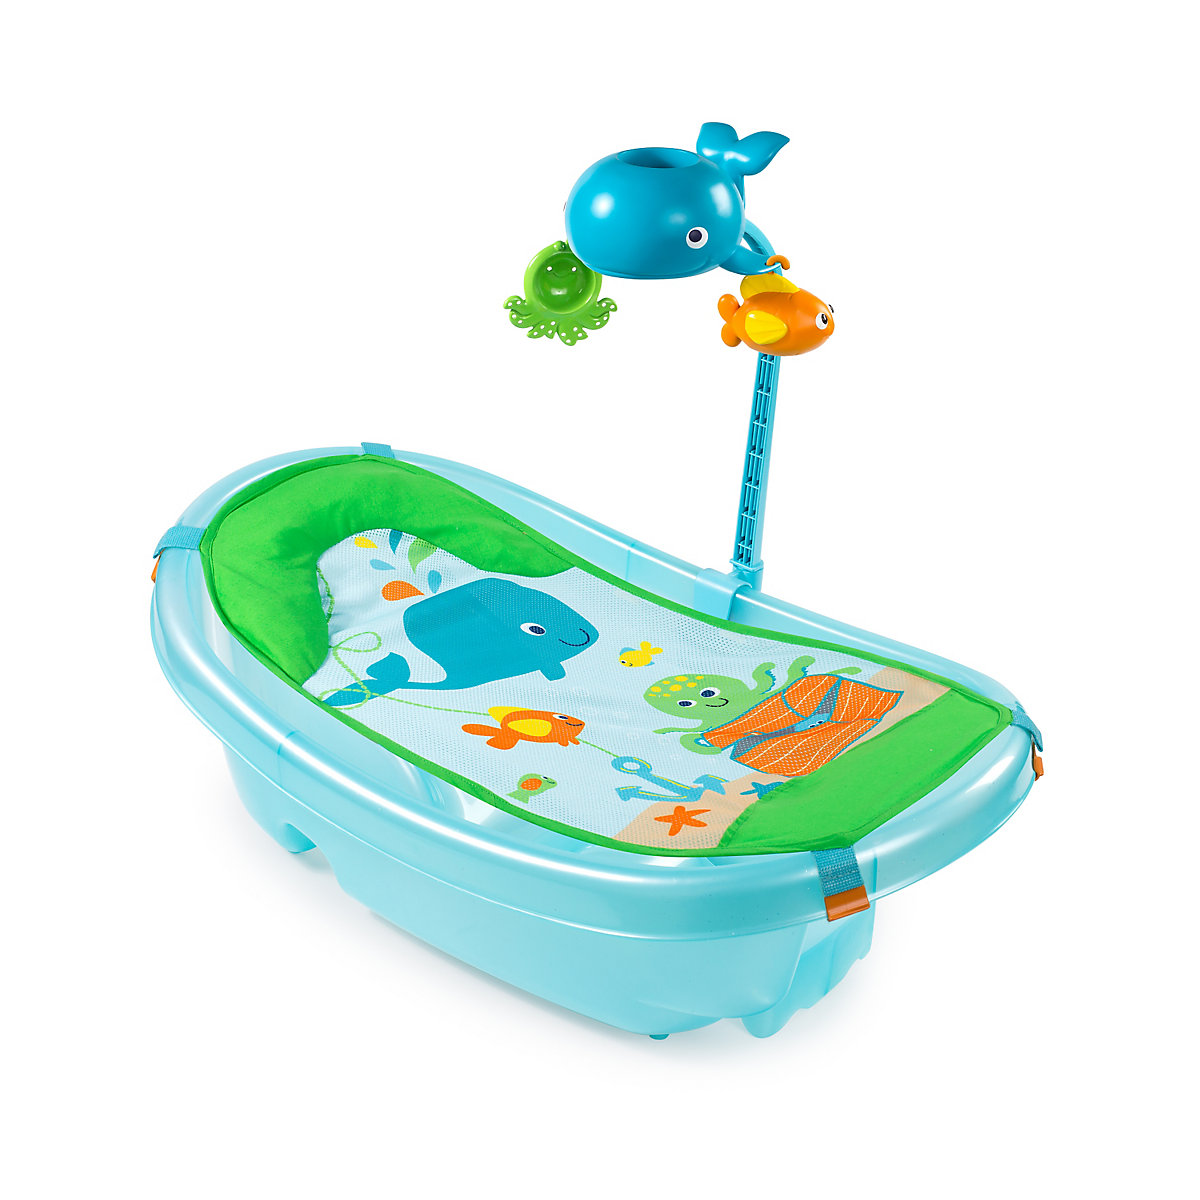 Summer Infant Ocean Buddies Bath Tub - Exclusive to Mothercare